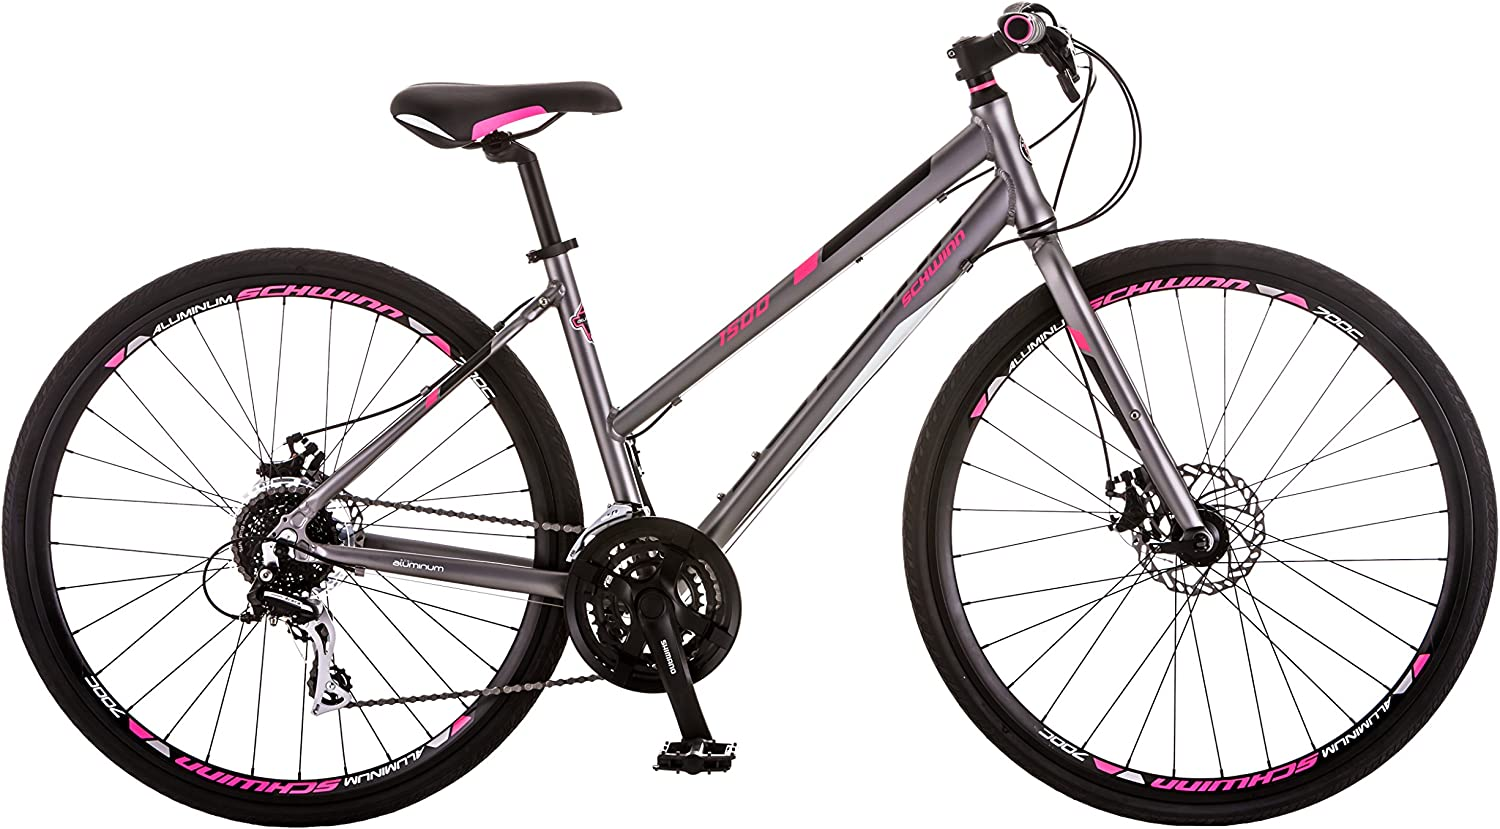 sixthreezero EVRYjourney Fully Loaded Men s Hybrid Bike, 26 Inches, 7-Speed, Matte Black